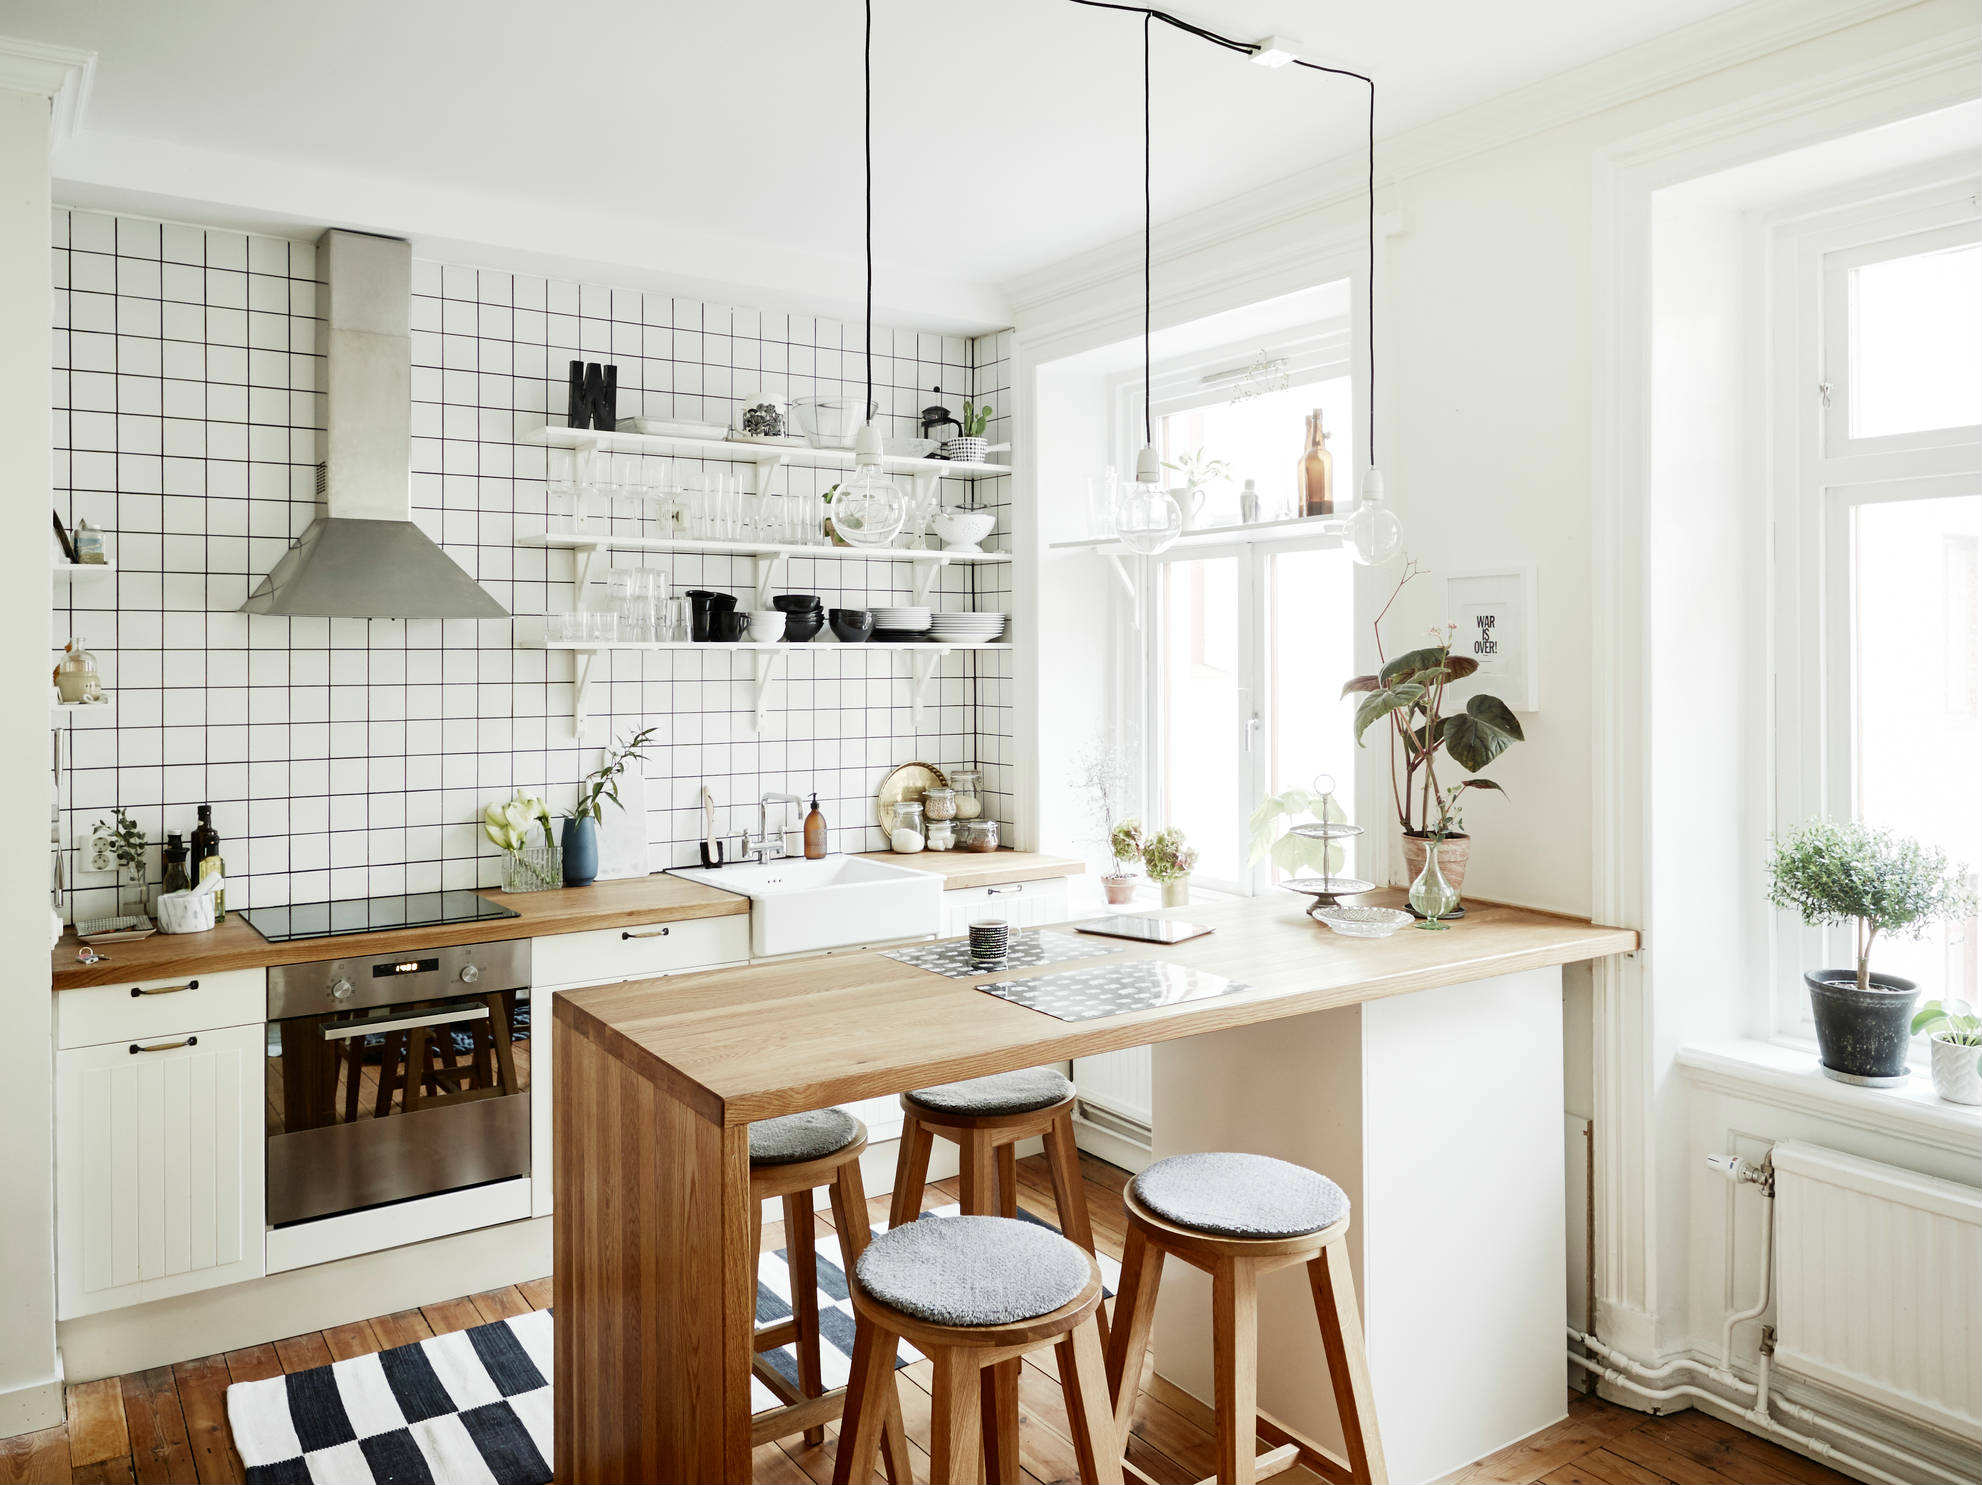 10 Bright and White Kitchens - Tinyme Blog